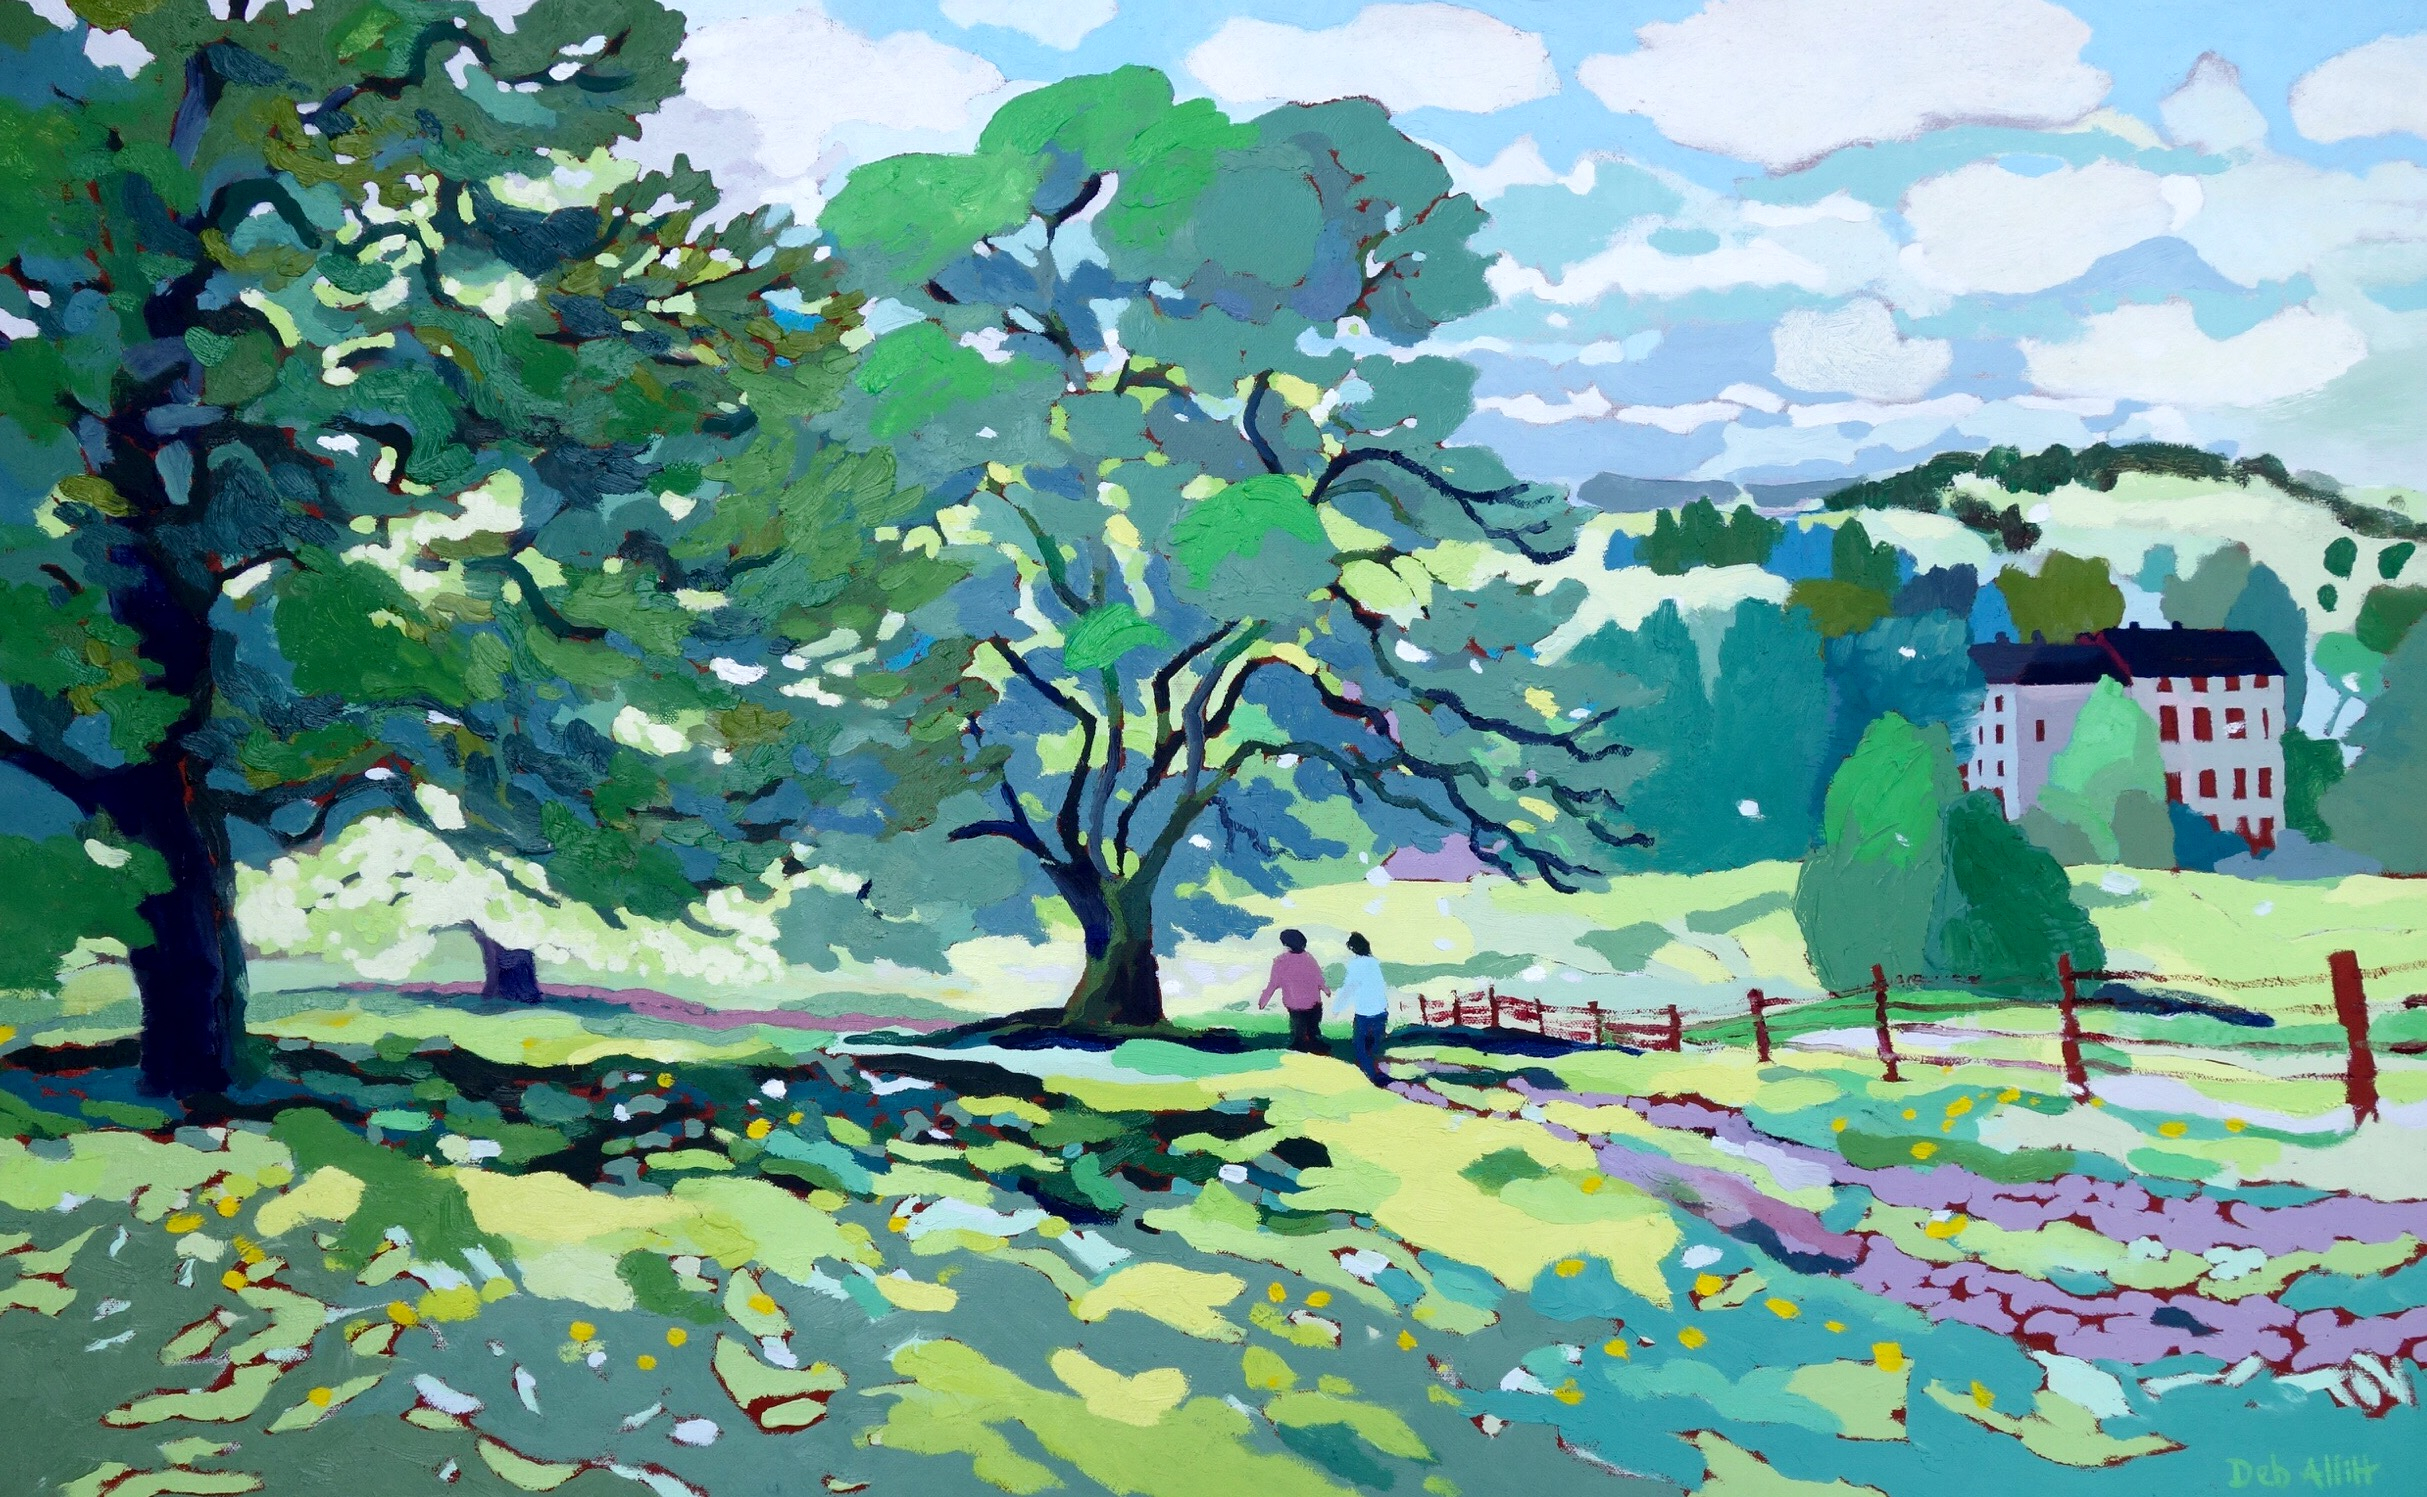 Spring Trees, Scudding Clouds, Alderwasley. Oil on canvas. 60 x 97.5 cm. (sold)